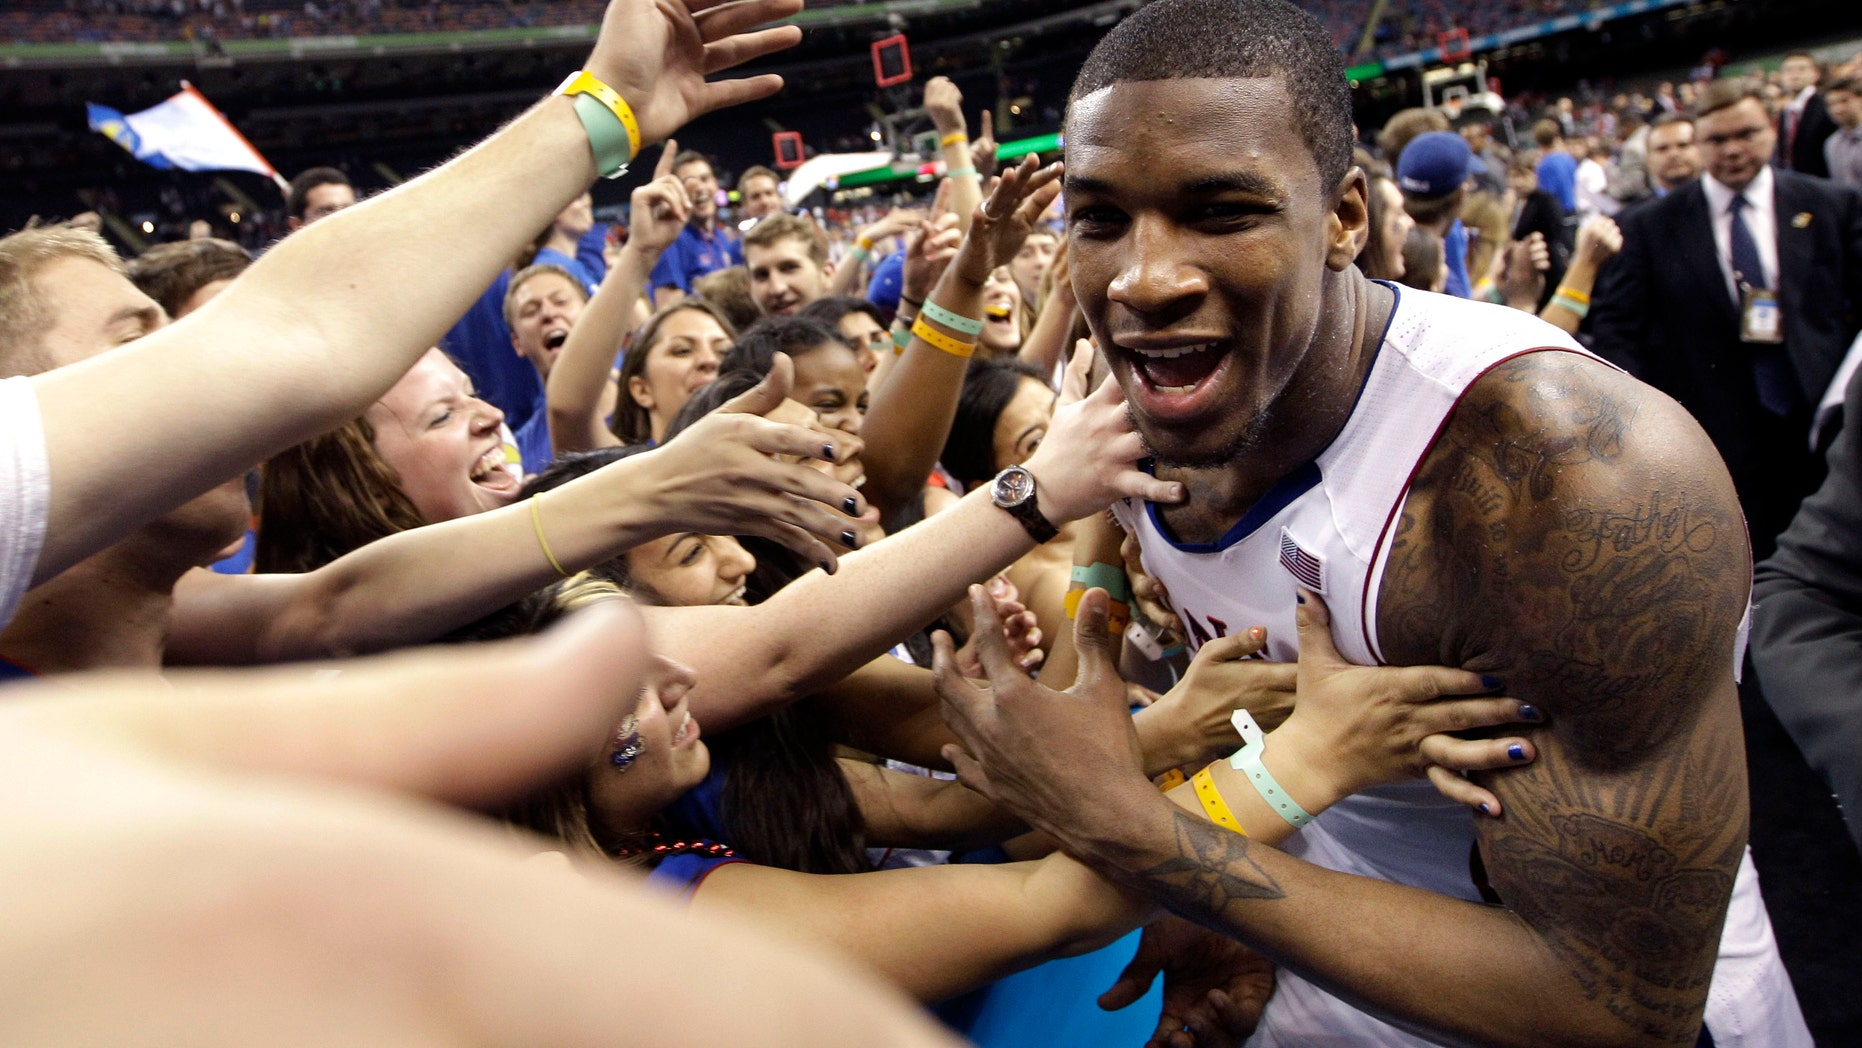 Kansas forward Thomas Robinson celebrates with fans after their 64-62 win over Ohio State during an NCAA Final Four semifinal college basketball tournament game Saturday, March 31, 2012, in New Orleans. (AP Photo/David J. Phillip)